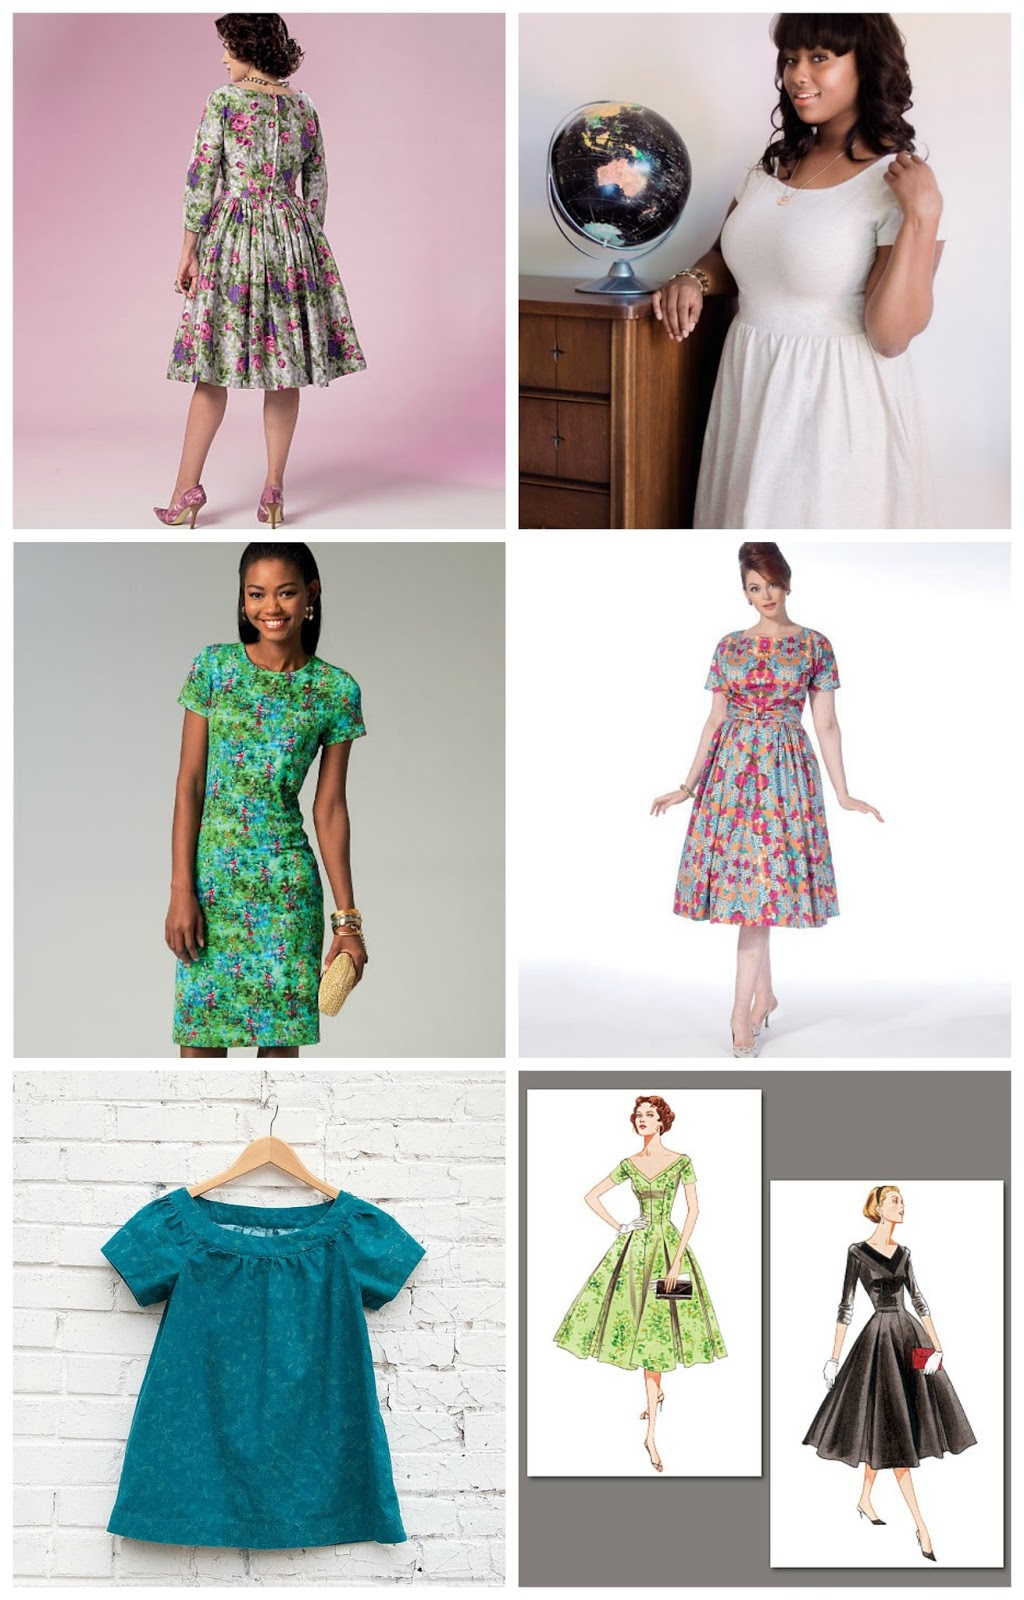 The Feisty Redhead: 6 Patterns to Sew in 2016